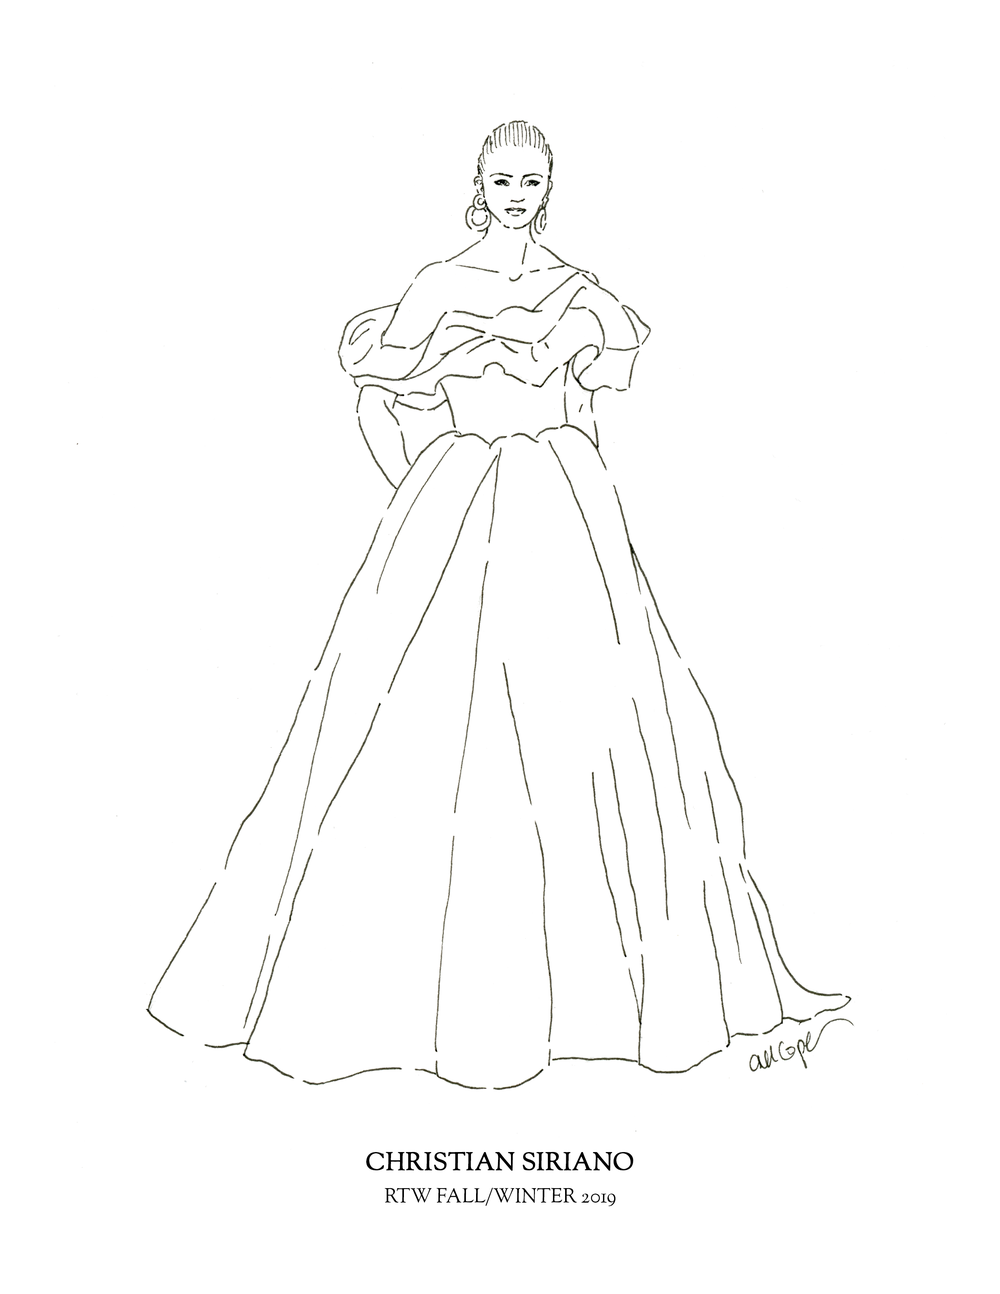 Christian Siriano Page.png